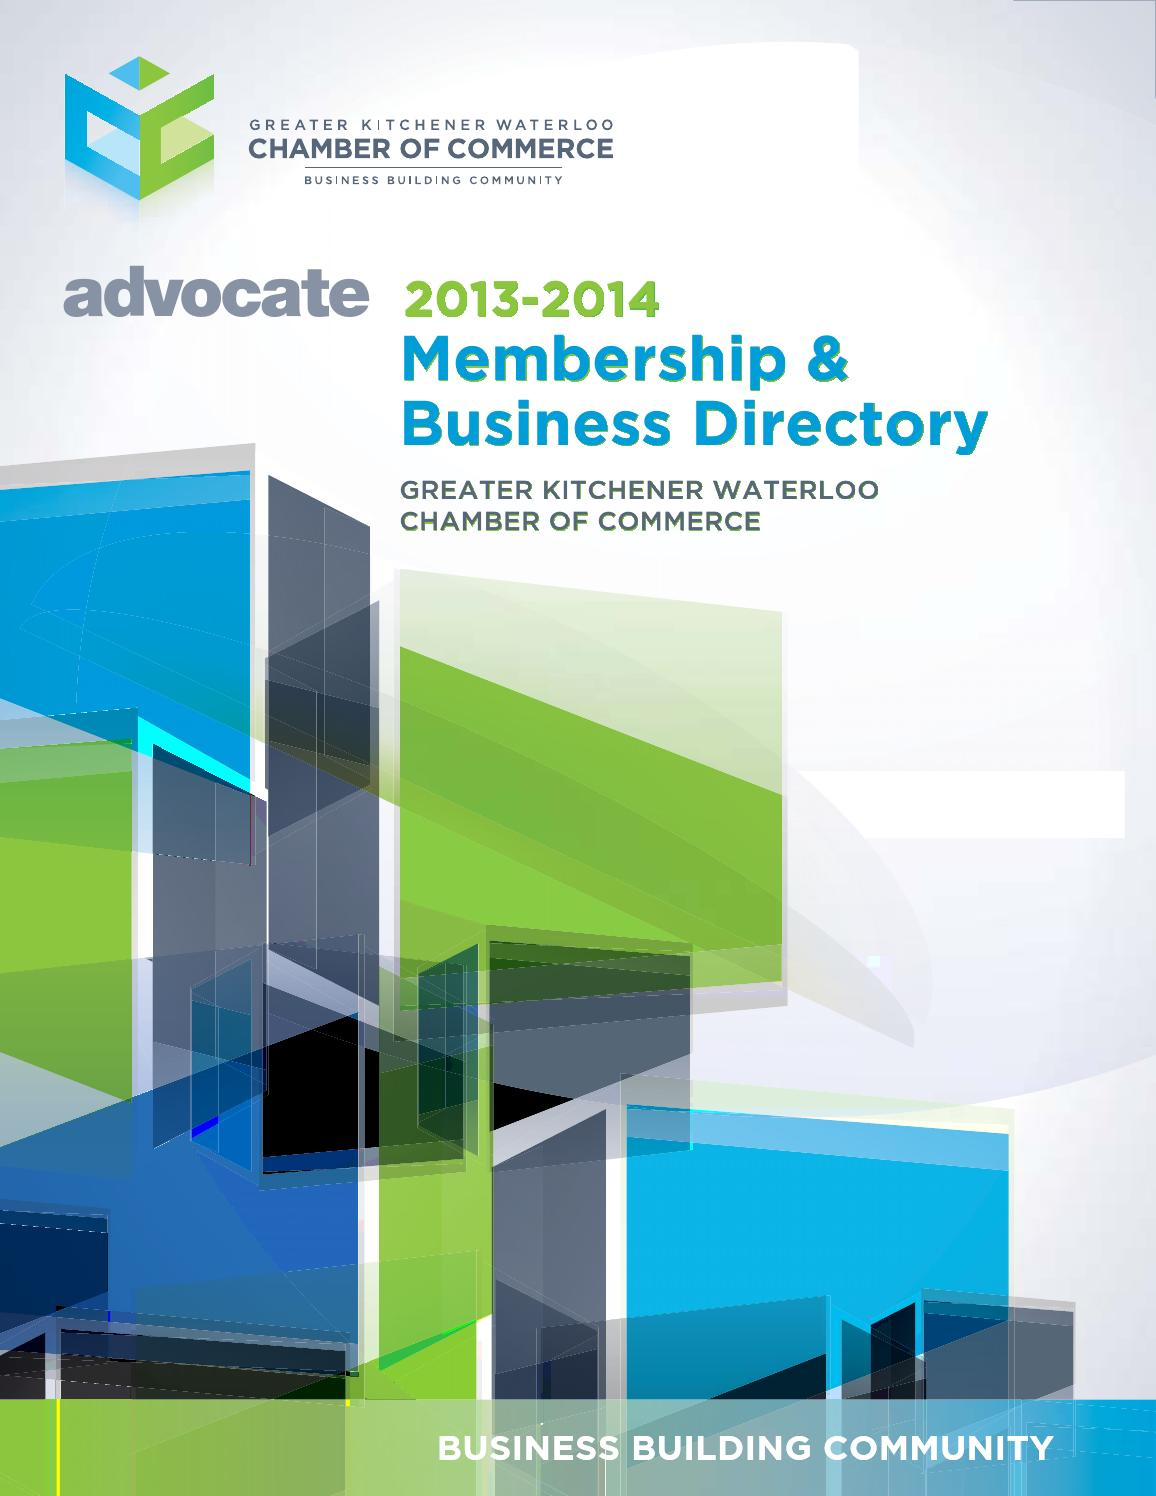 Small Business Centre Kitchener 2013 2014 Greater Kw Chamber Advocate Membership Directory By